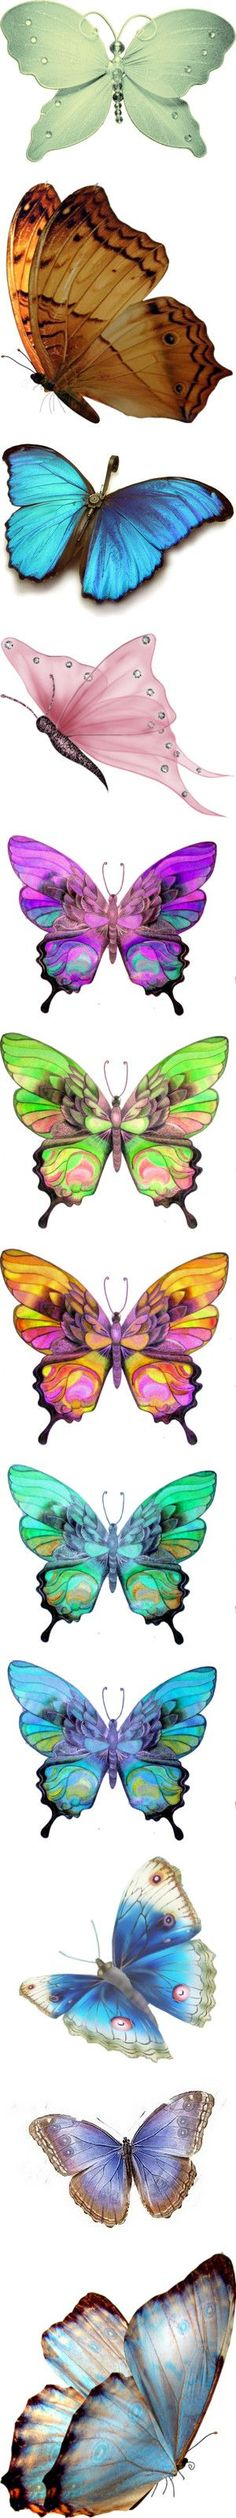 Butterflies with potential!: